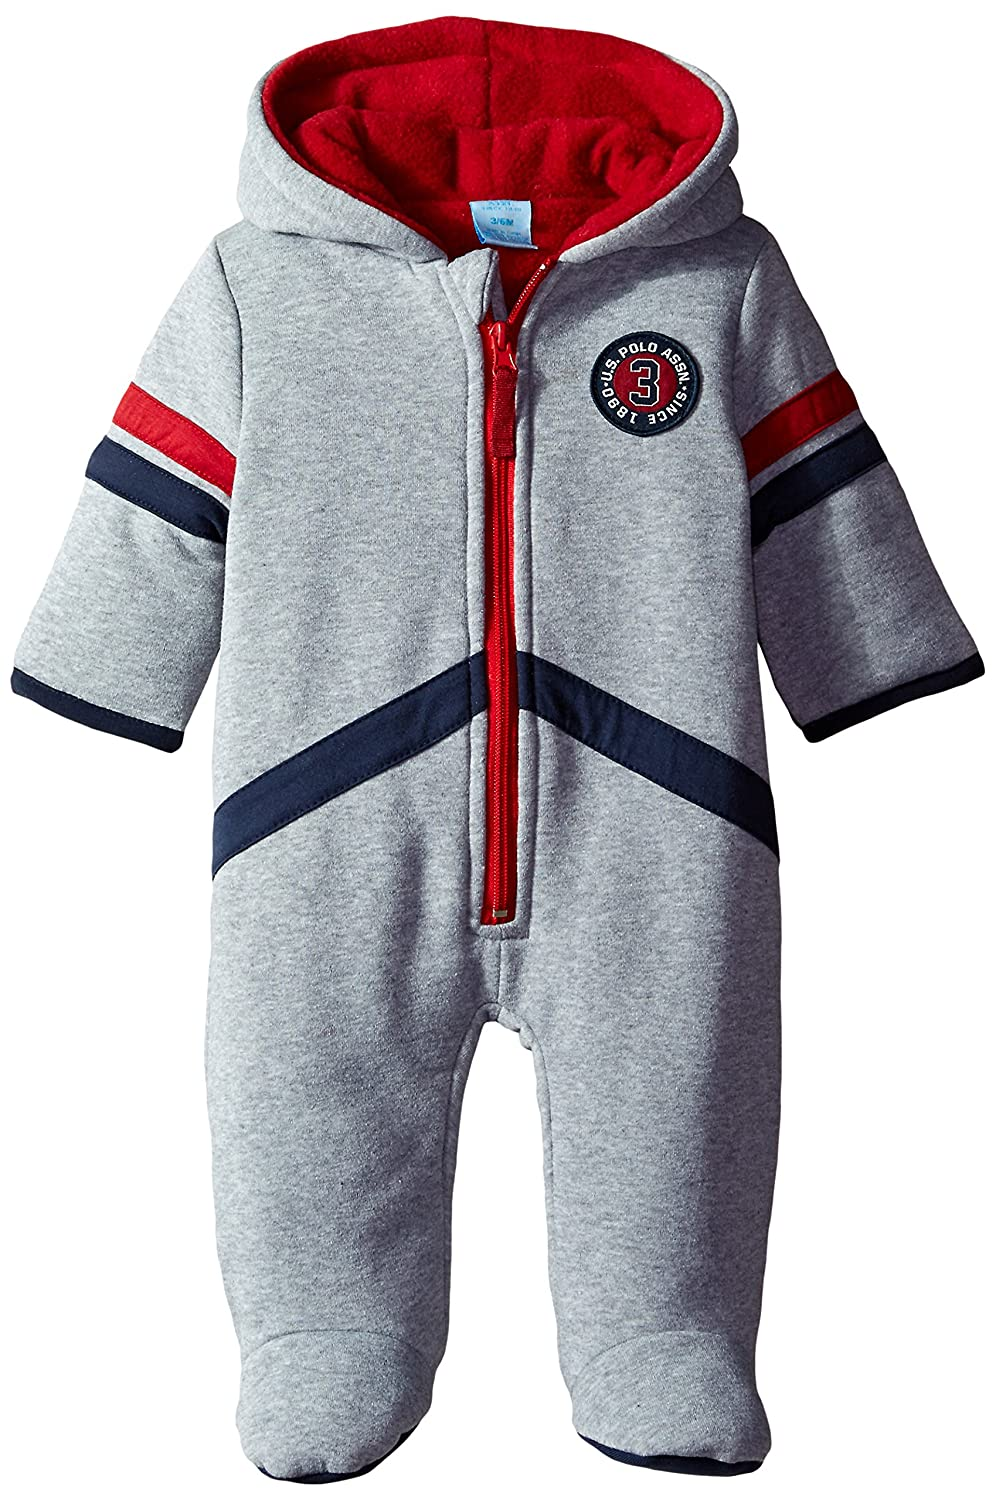 U.S. Polo Assn. Baby Boys' Faux Fur Fleece Pram US Polo Baby Outerwear ONU780AM